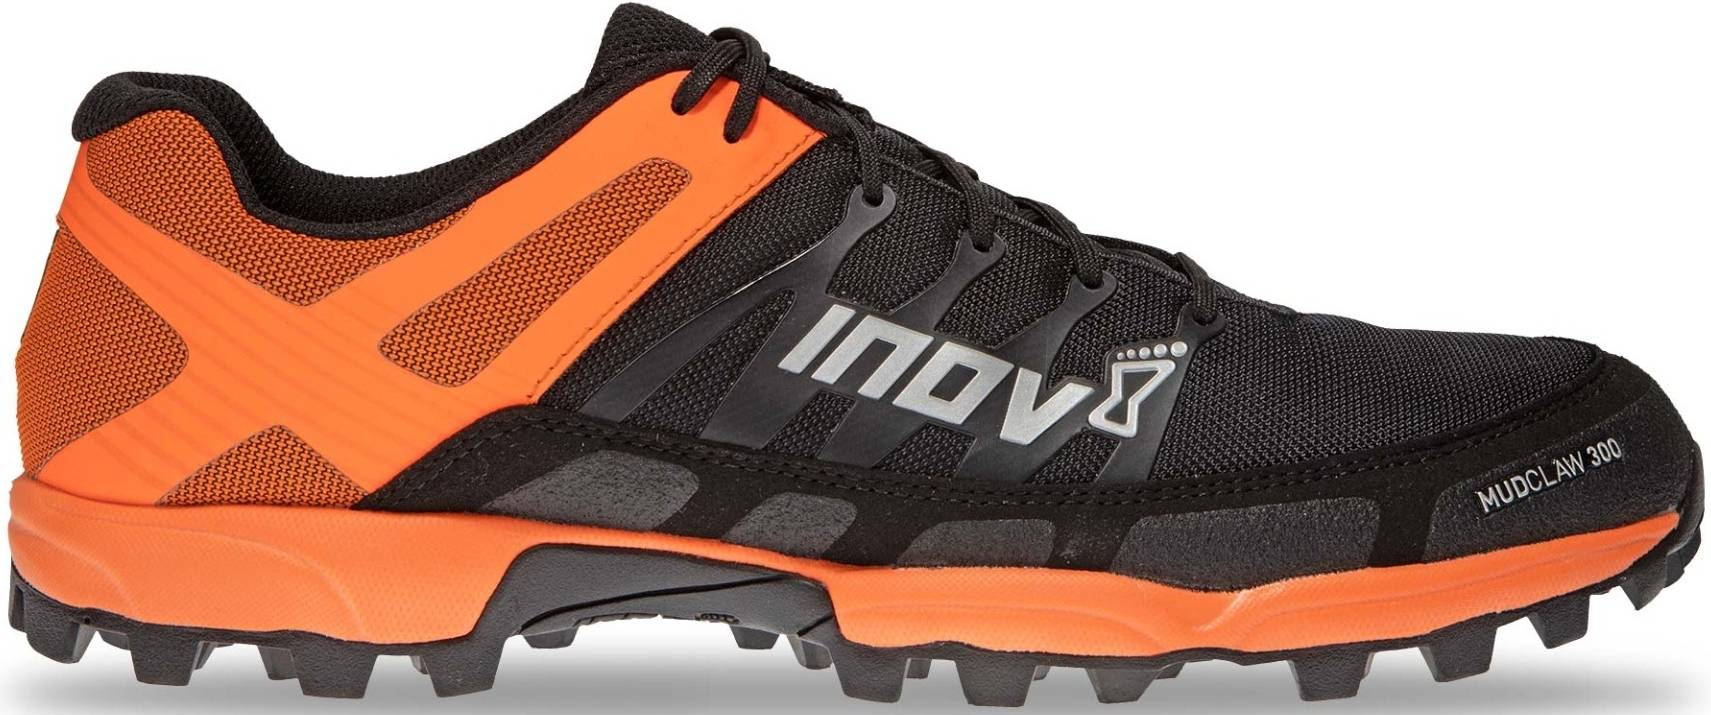 Only $92 + Review of Inov-8 Mudclaw 300